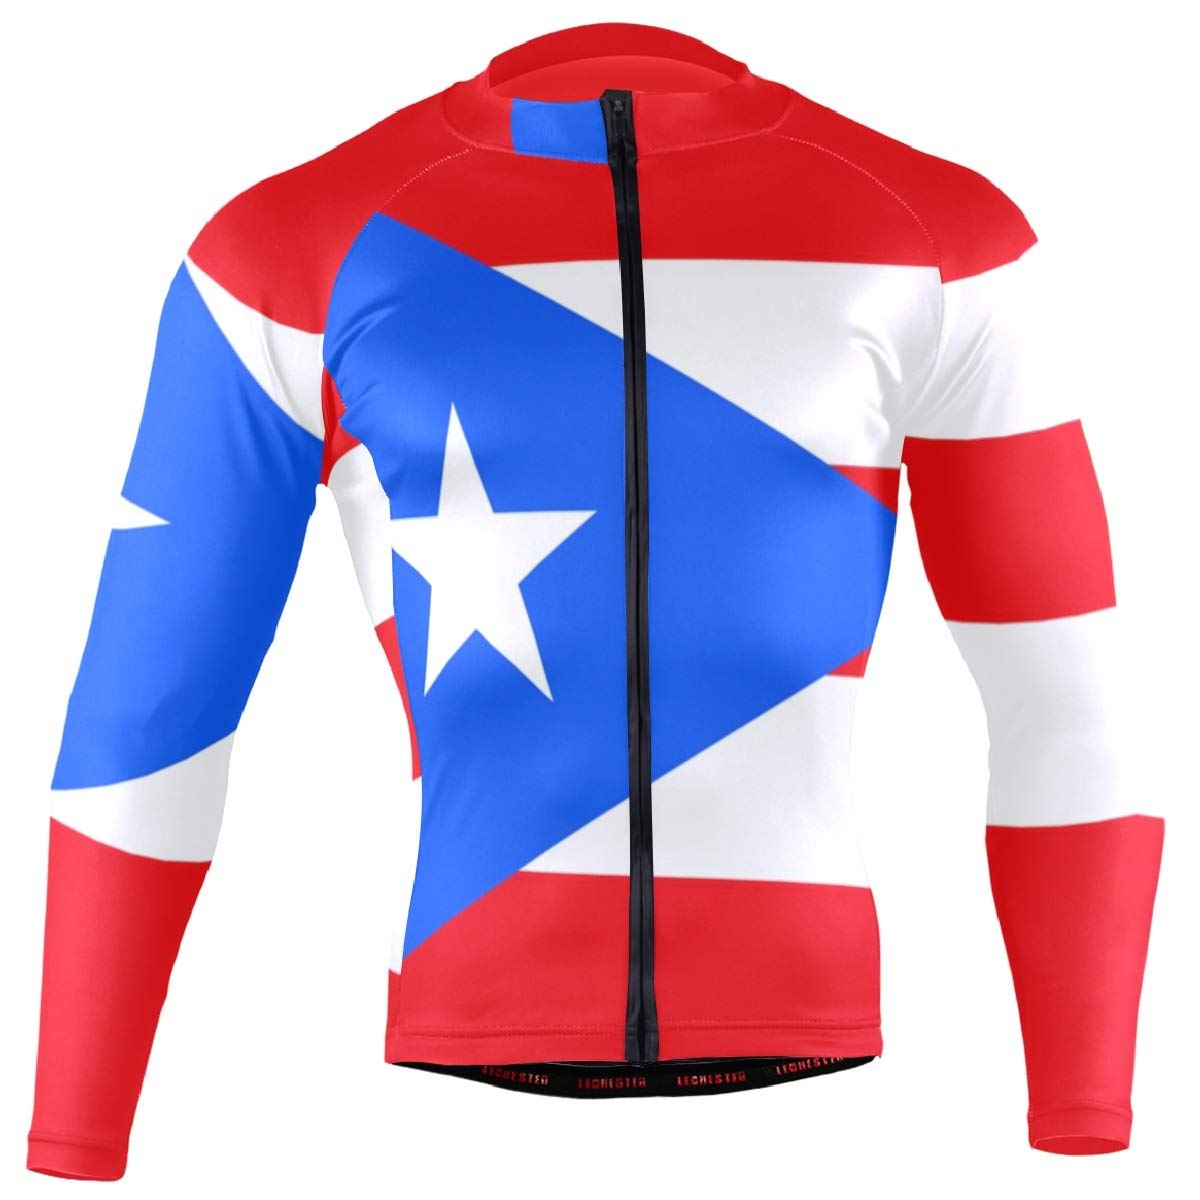 CHINEIN Men's Cycling Jersey Long Sleeve with 3 Rear Pockets Shirt Puerto Rico Flag